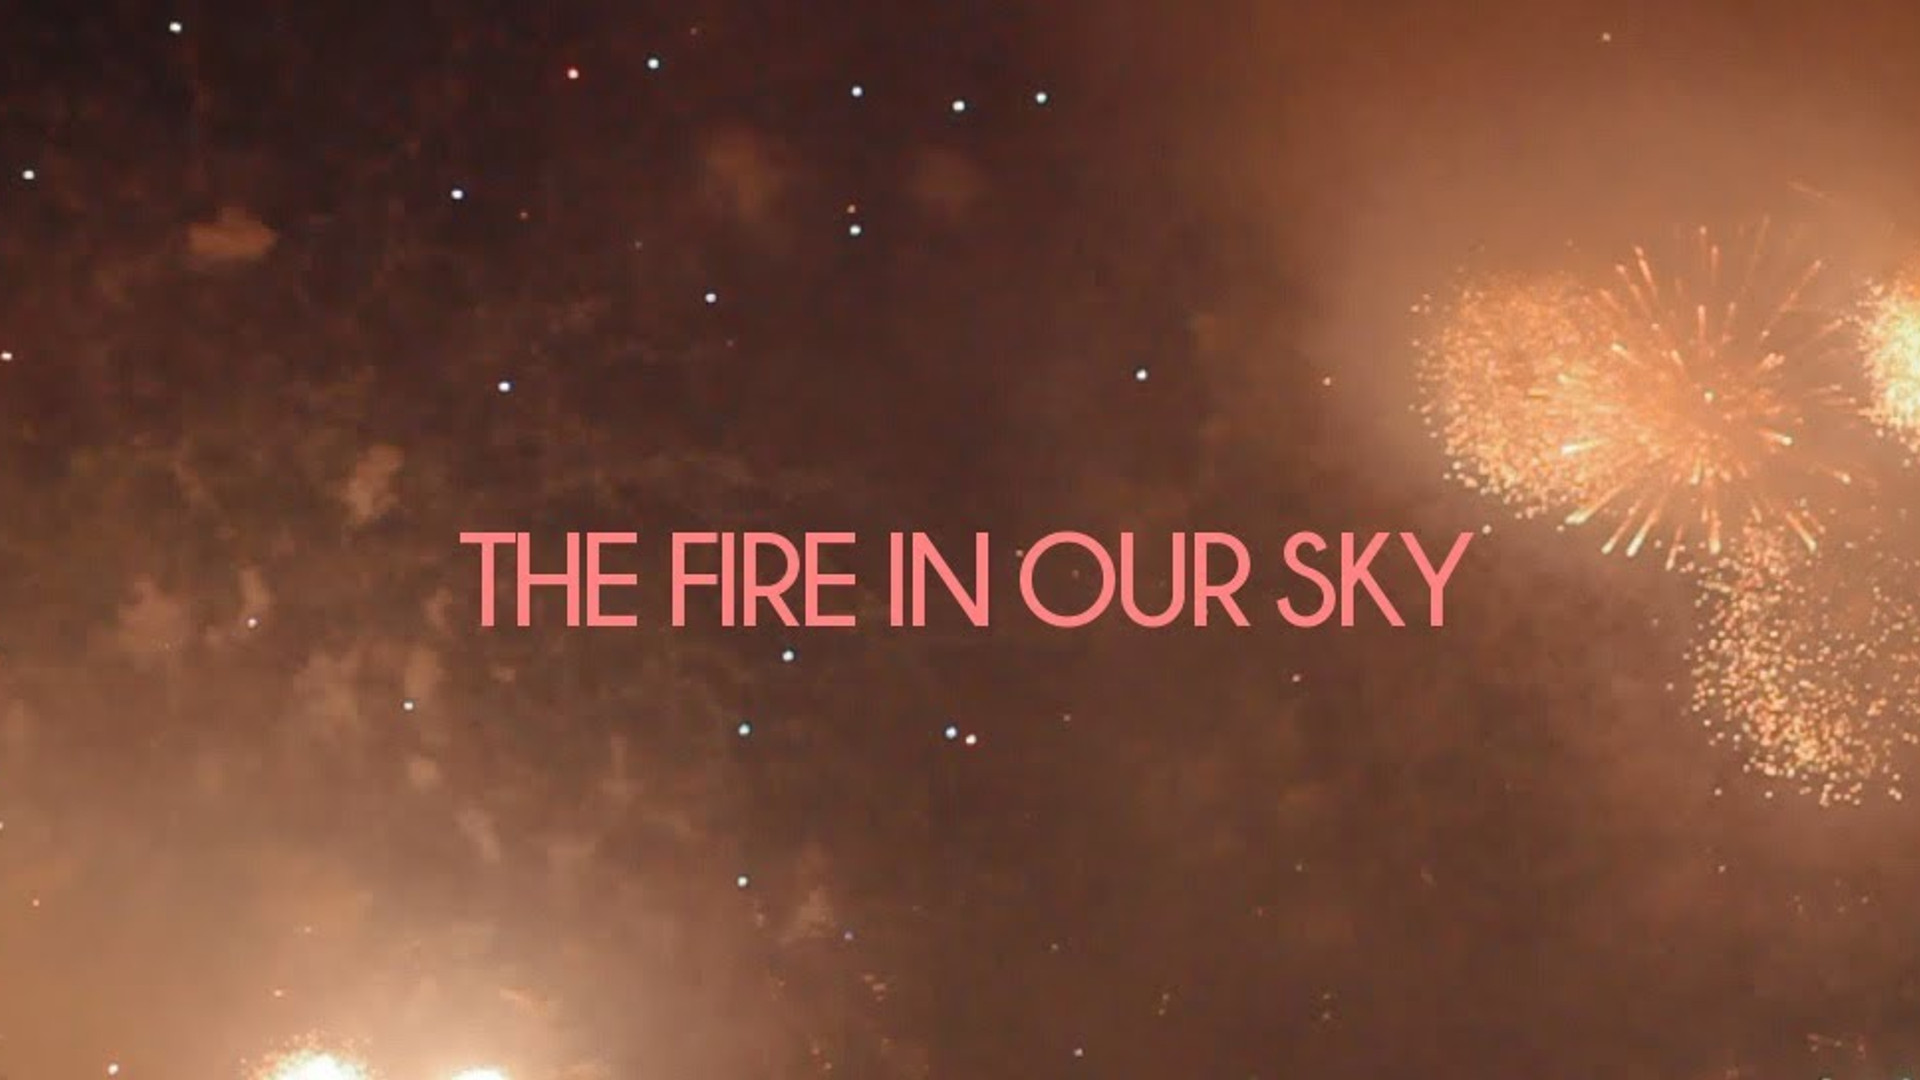 The Fire In Our Sky